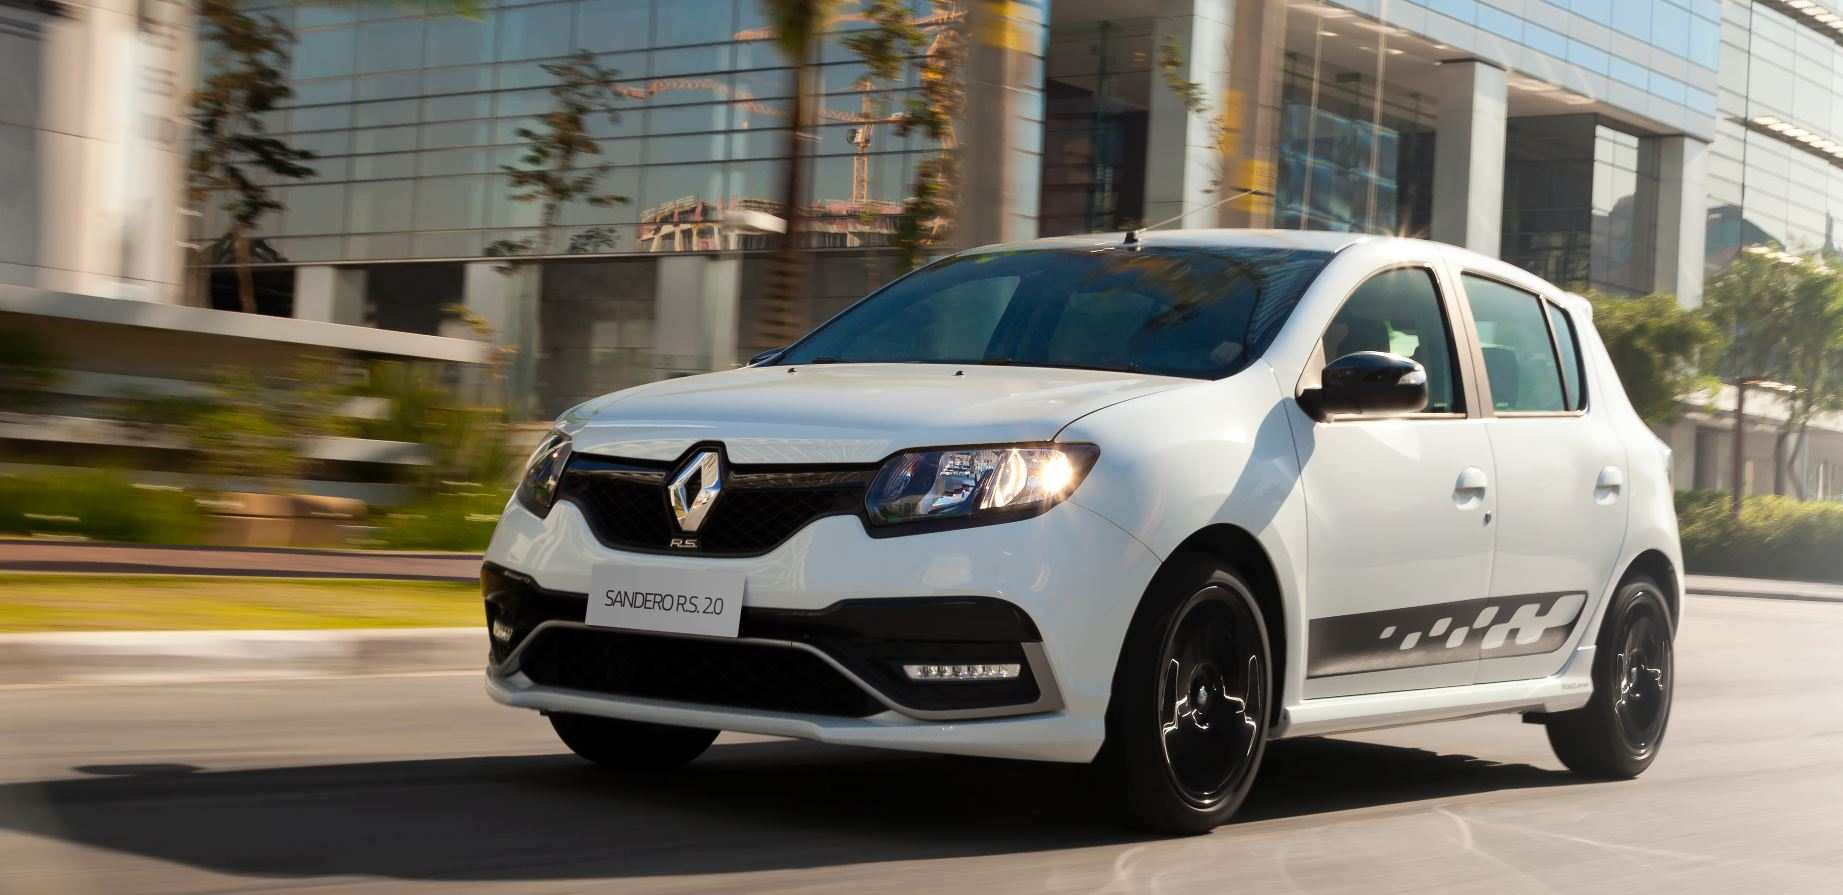 34 All New 2019 Renault Sandero Release Date And Concept